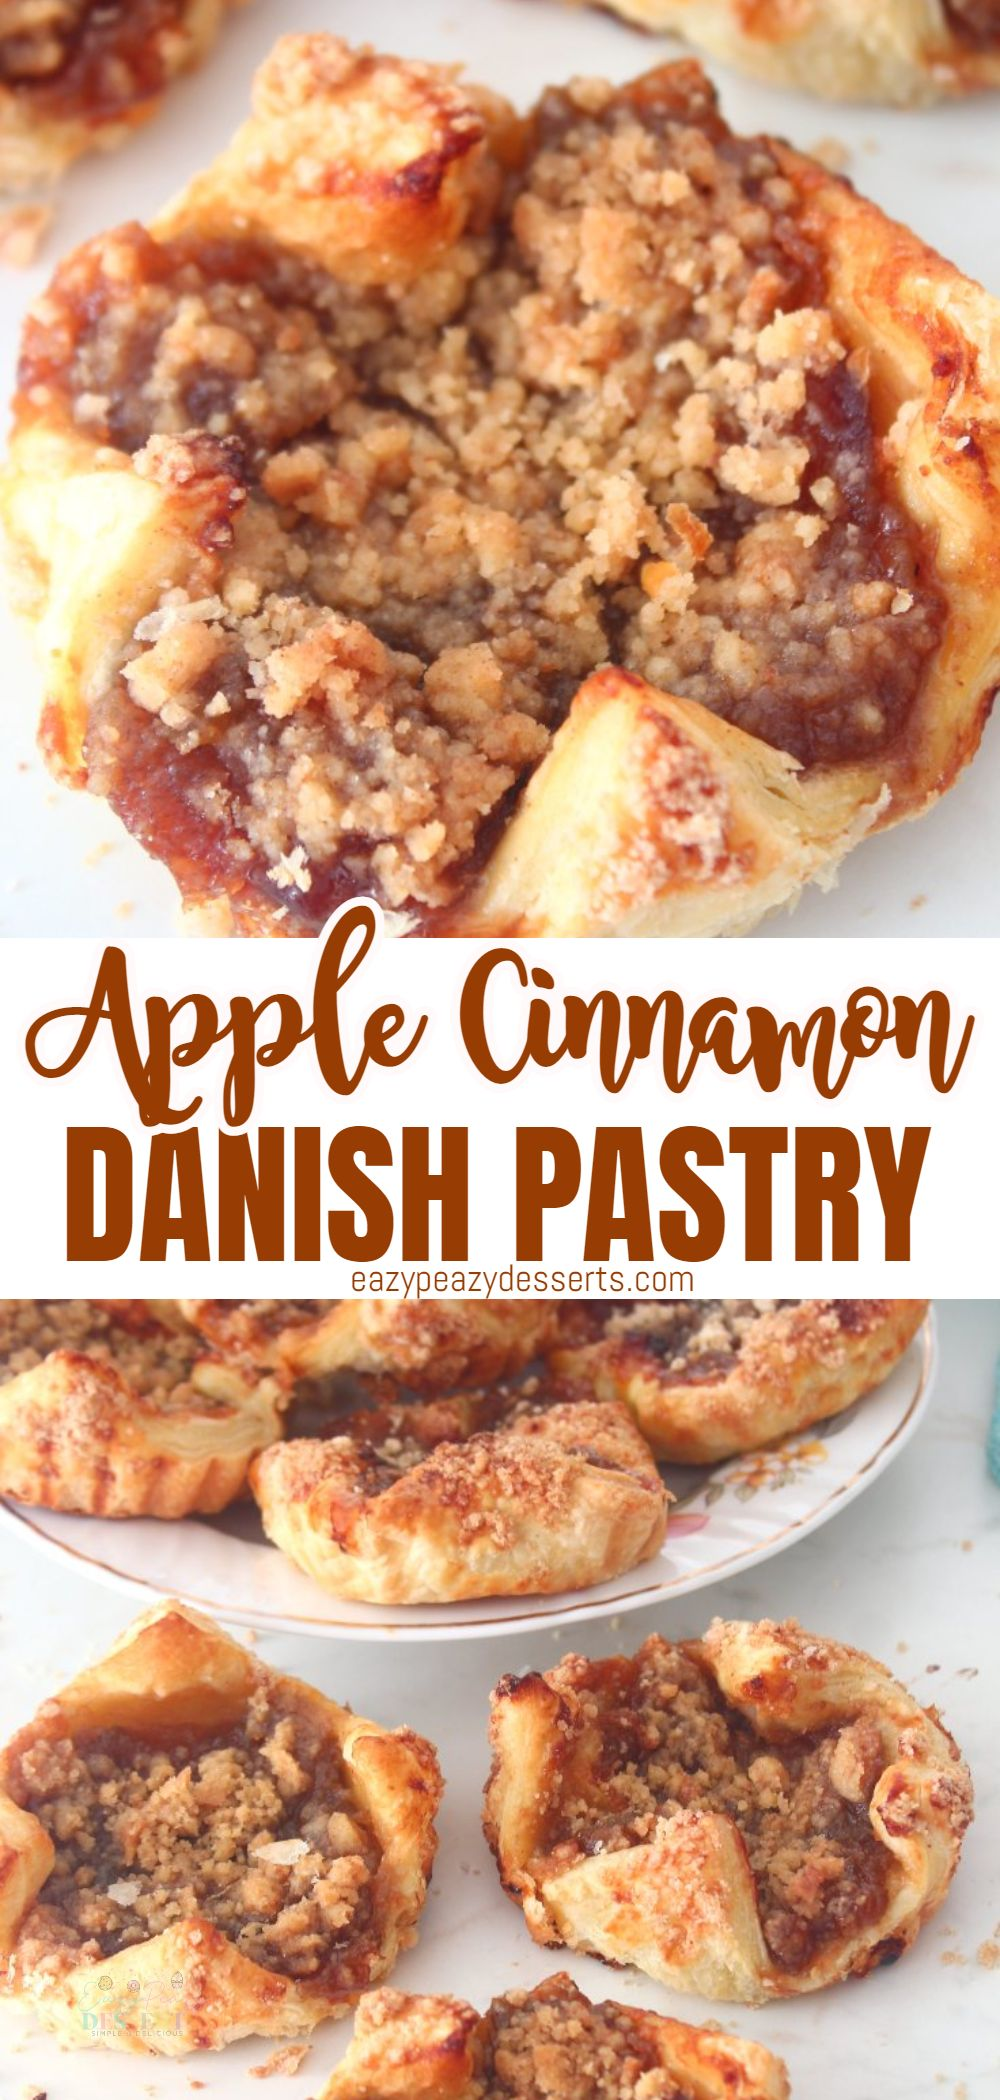 Apples are available in any season and they can be served in sooo many recipes! I just thought of making a Apple Danish recipe for today. via @eazypeazydesserts